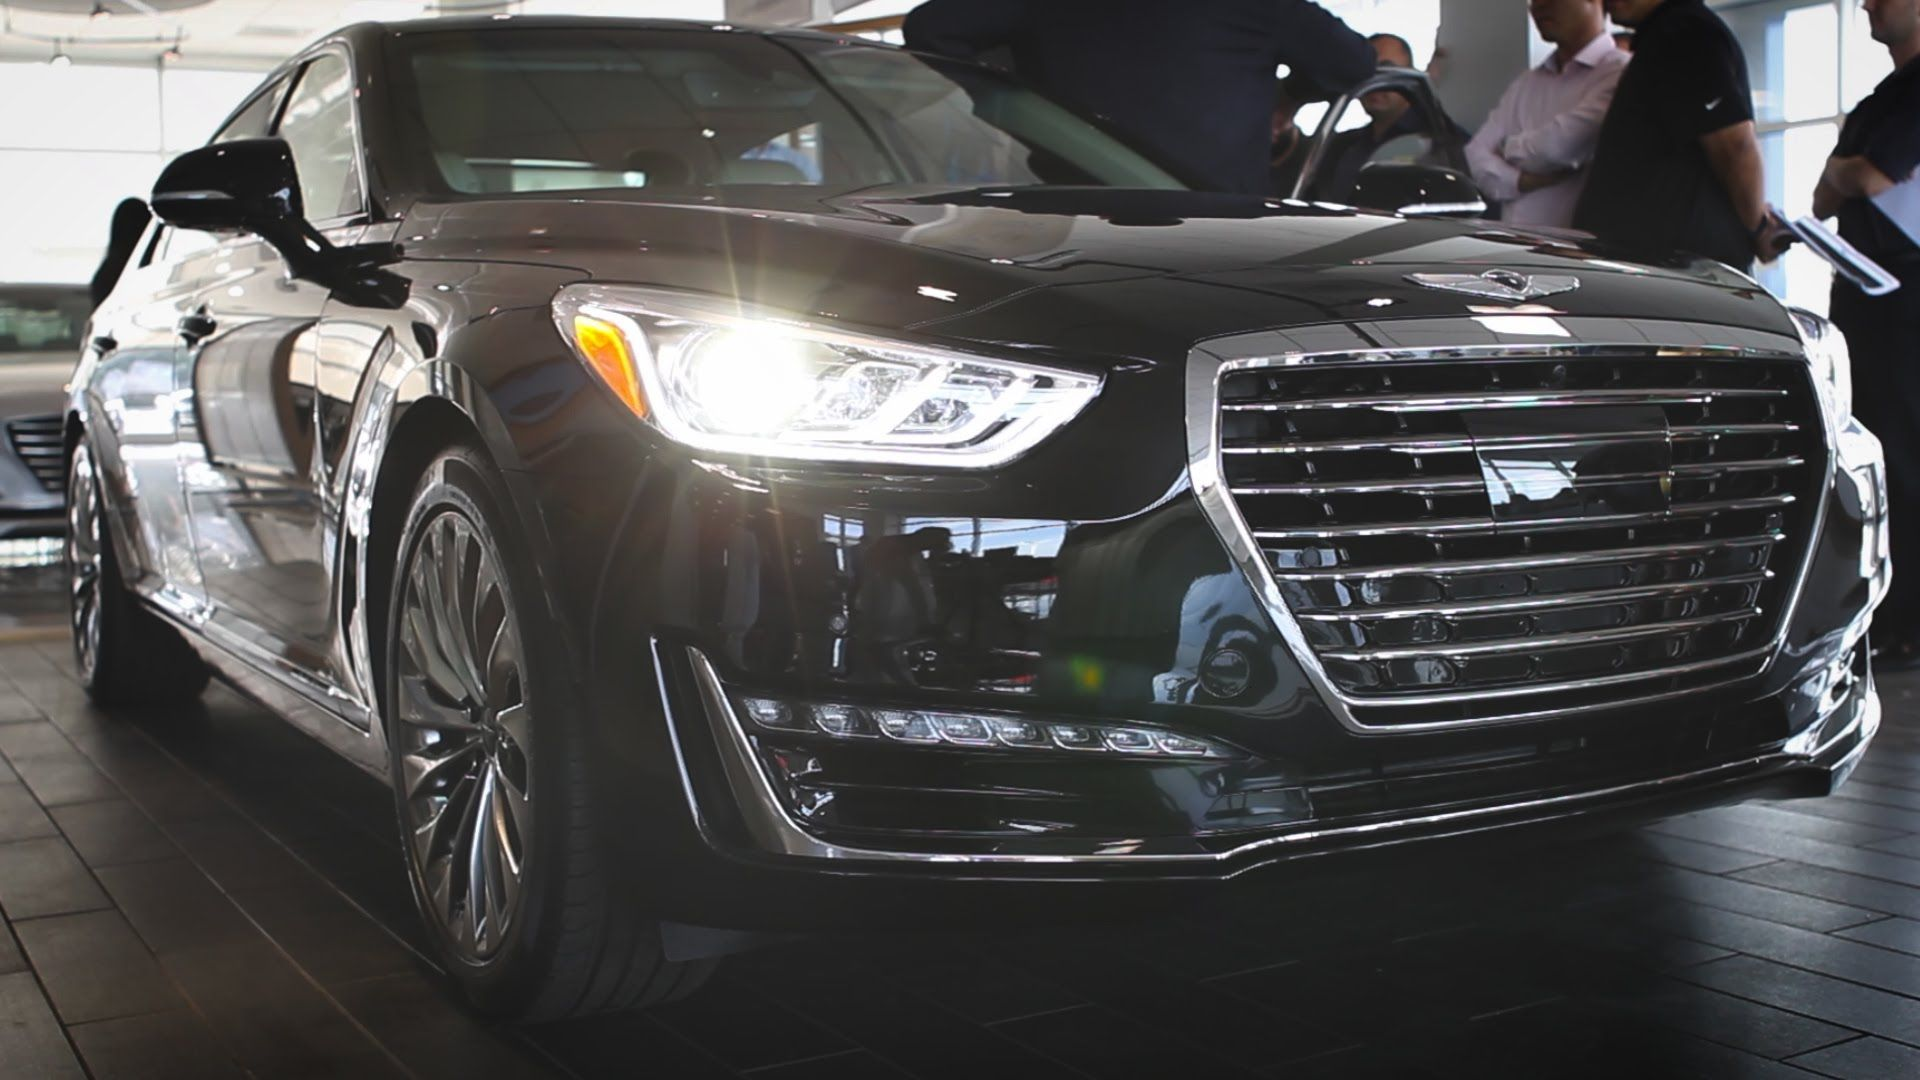 The Genesis Flagship Luxury Sedan Is Almost Here Capitol Hyundai Would Like To Formally Introduce You To The 2017 Genesis G90 D Luxury Sedan Hyundai Sedan